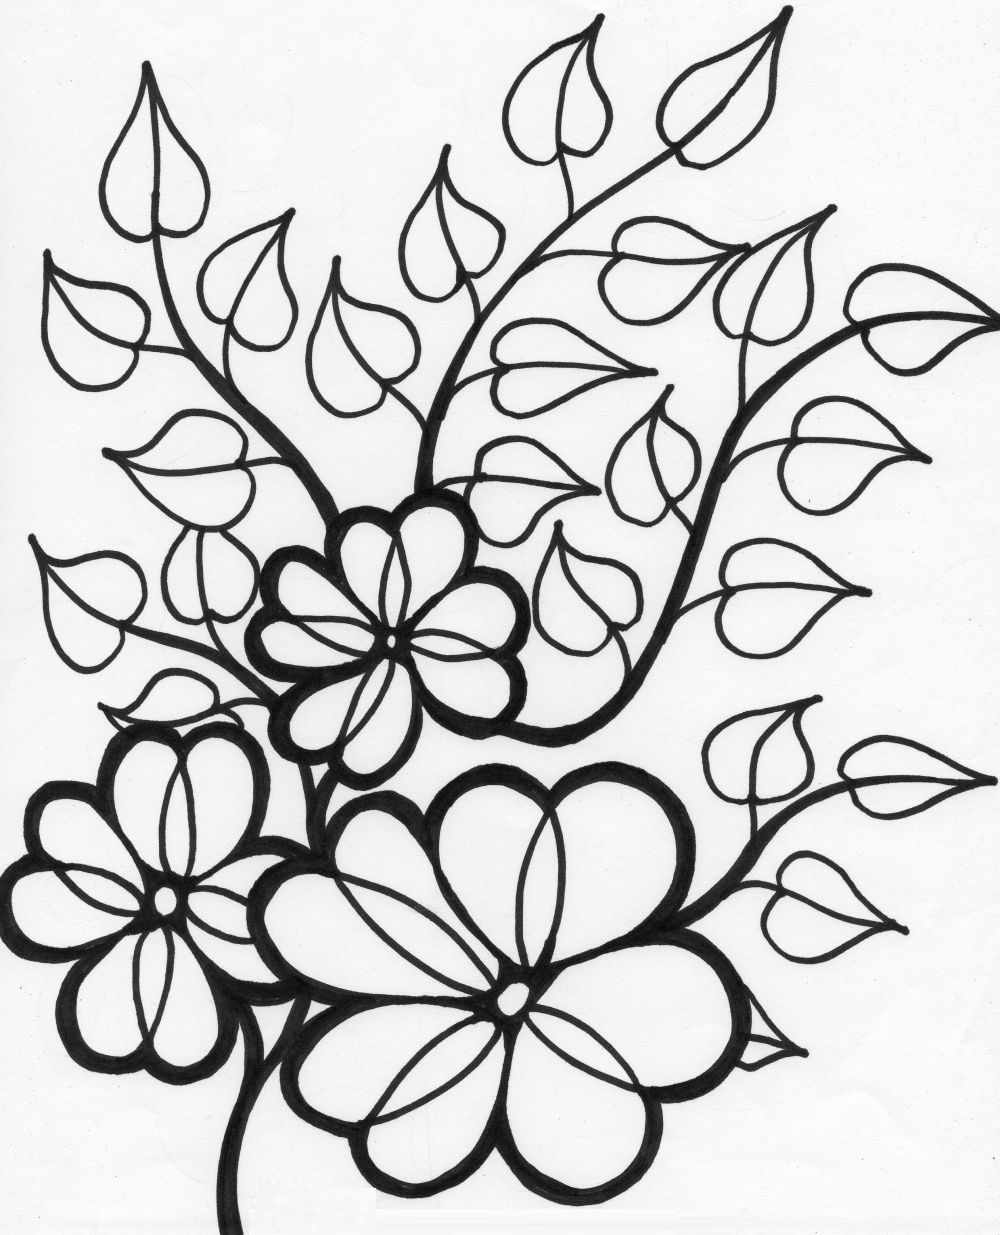 coloring pages of flowers free printable flower coloring pages for kids best flowers of coloring pages